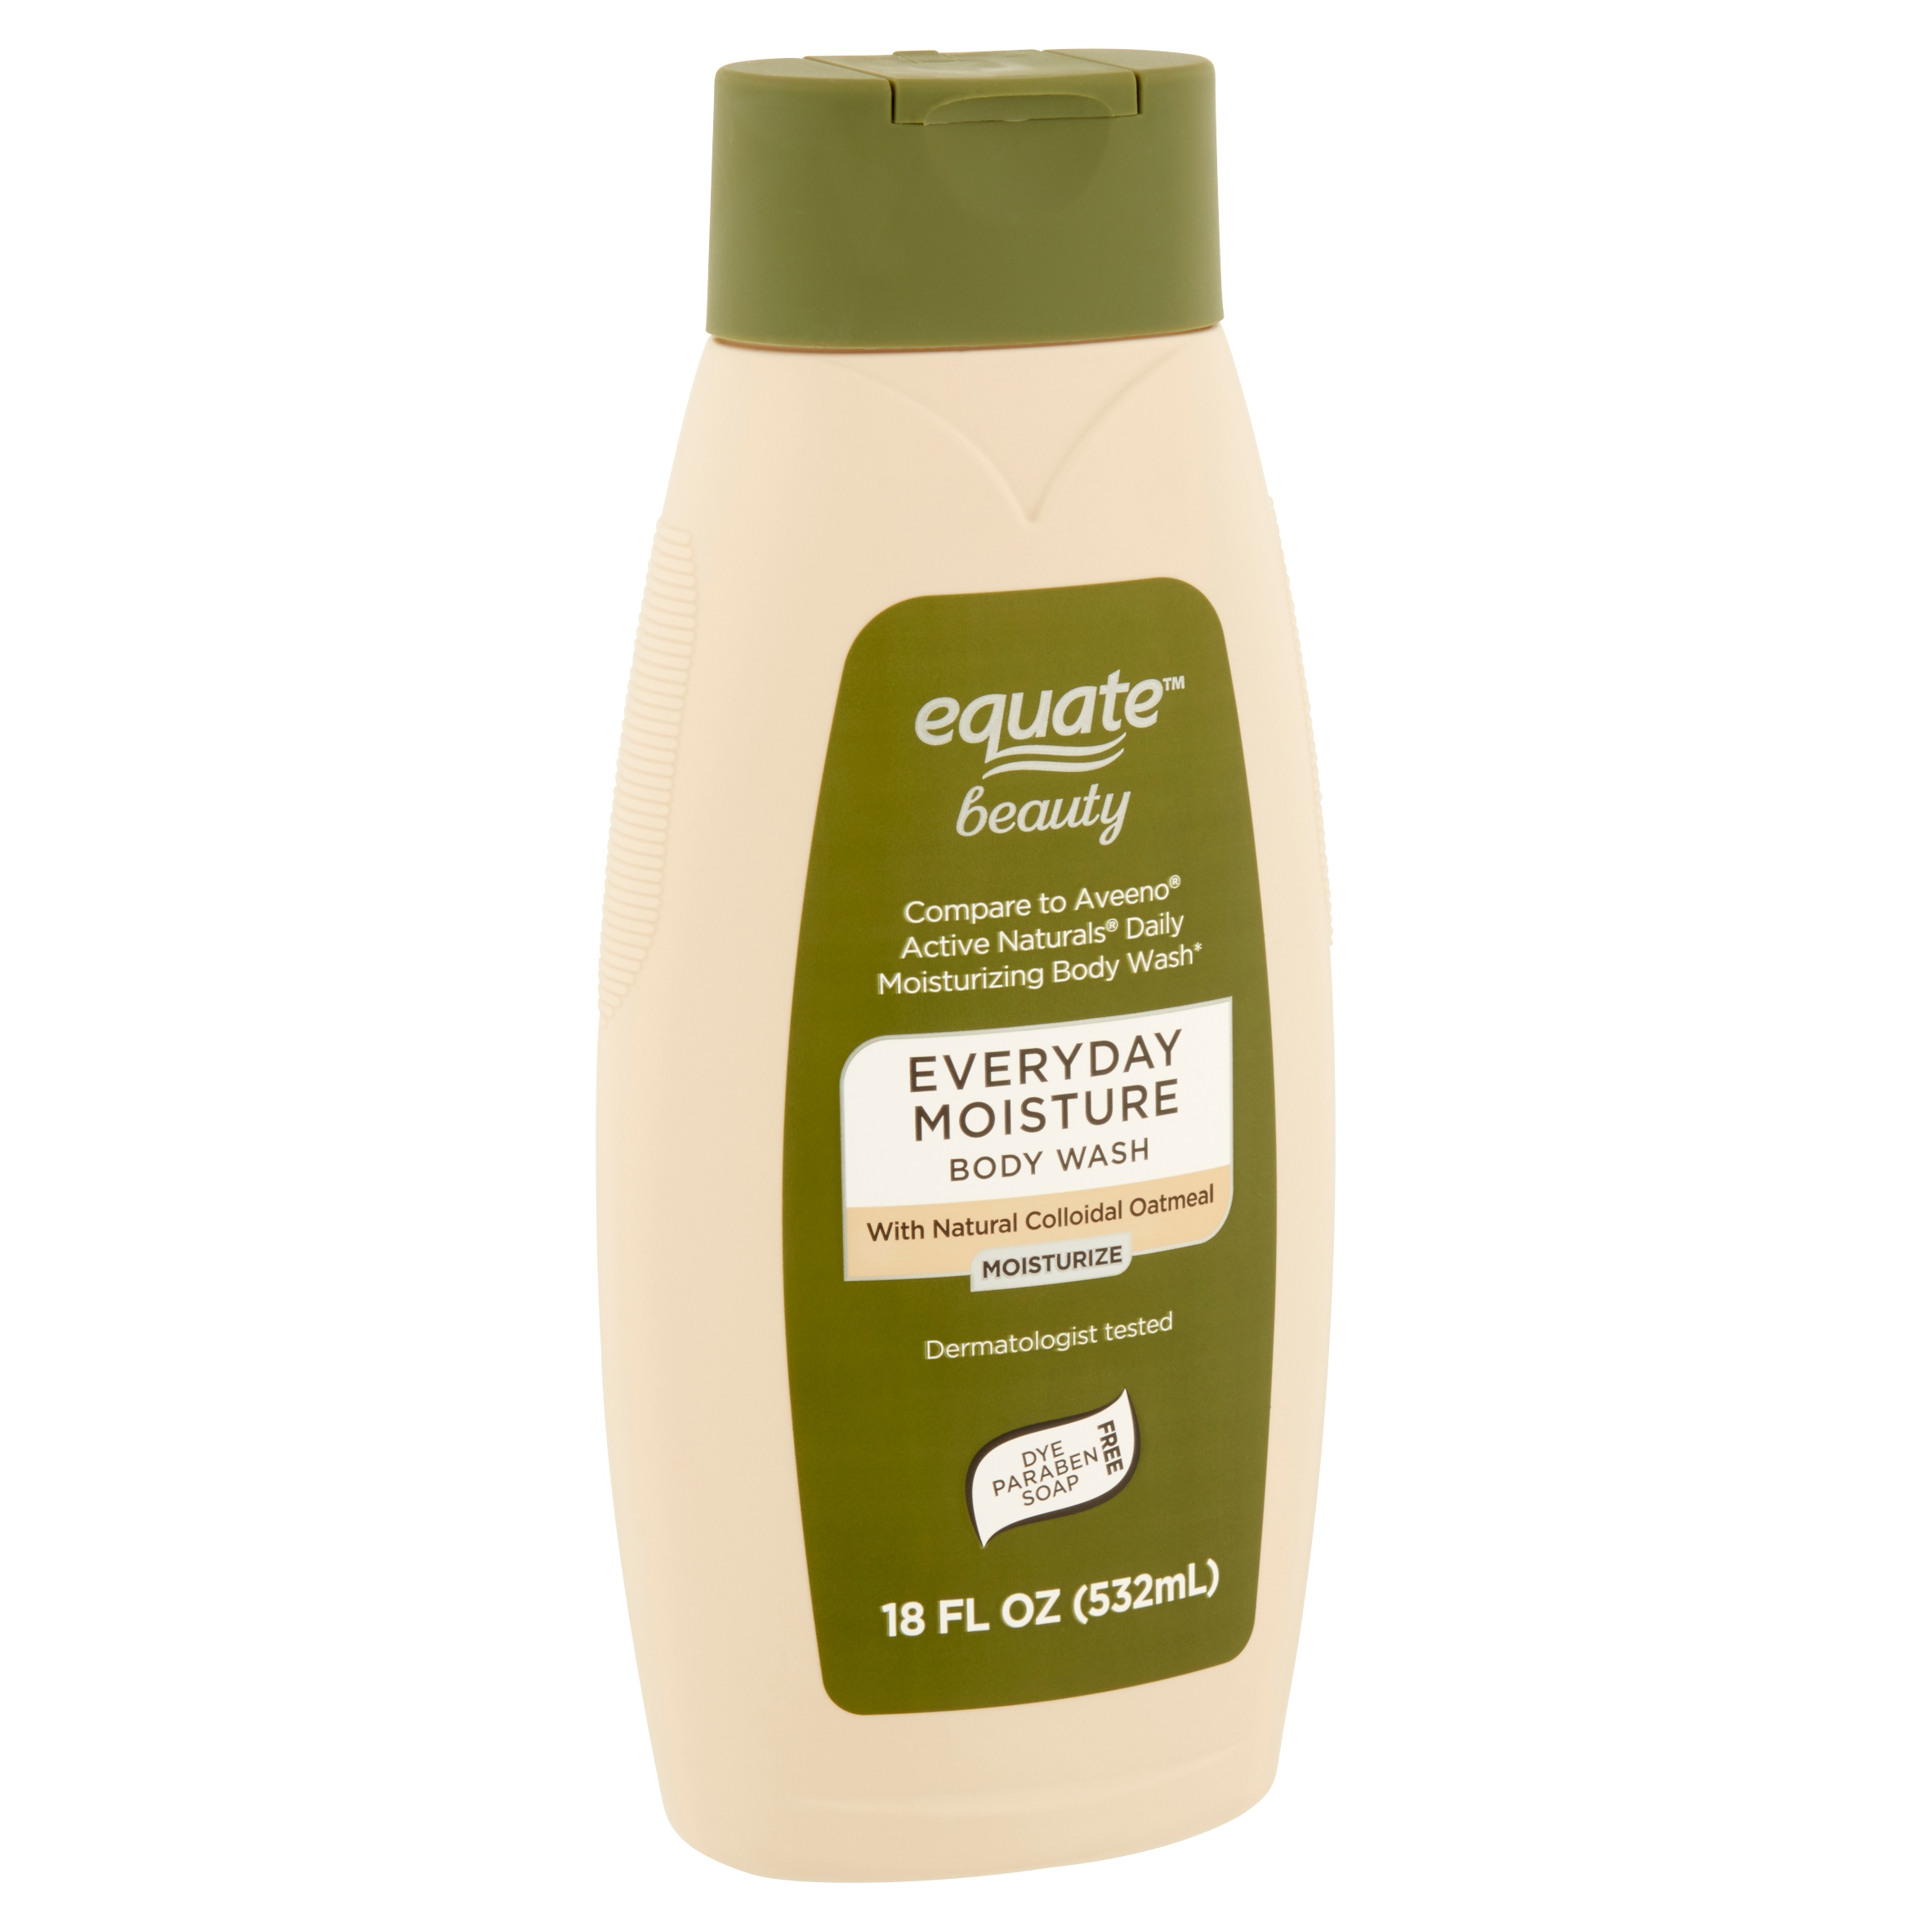 Equate Beauty Everyday Moisture Body Wash, 18 fl oz